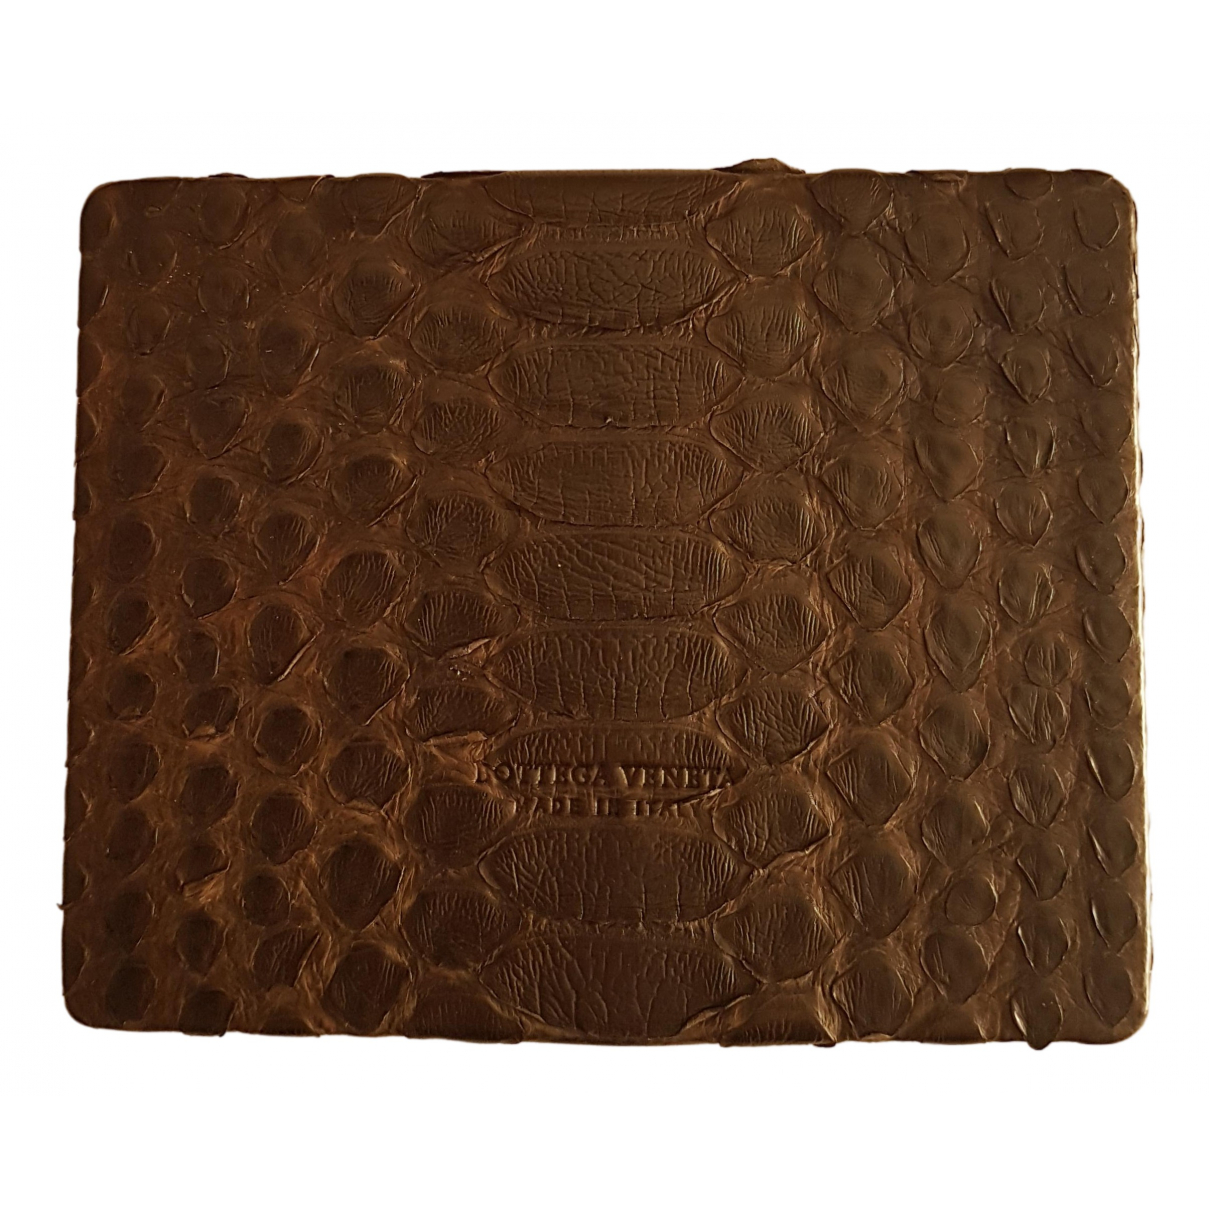 Bottega Veneta N Brown Python Home decor for Life & Living N